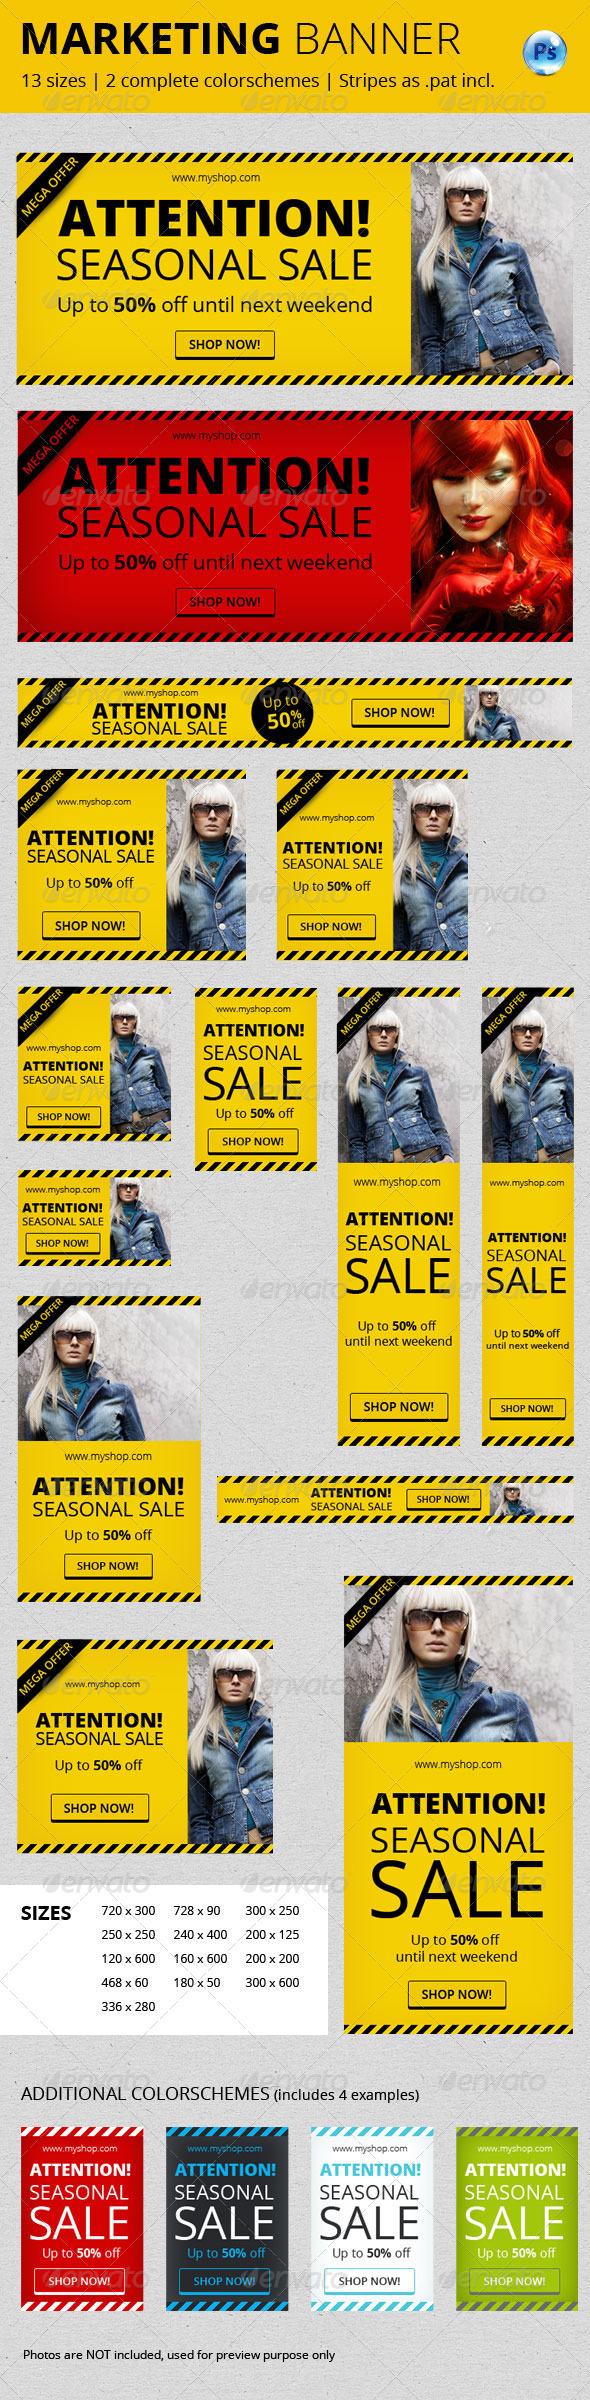 GraphicRiver Marketing Banner Vol II 6785457